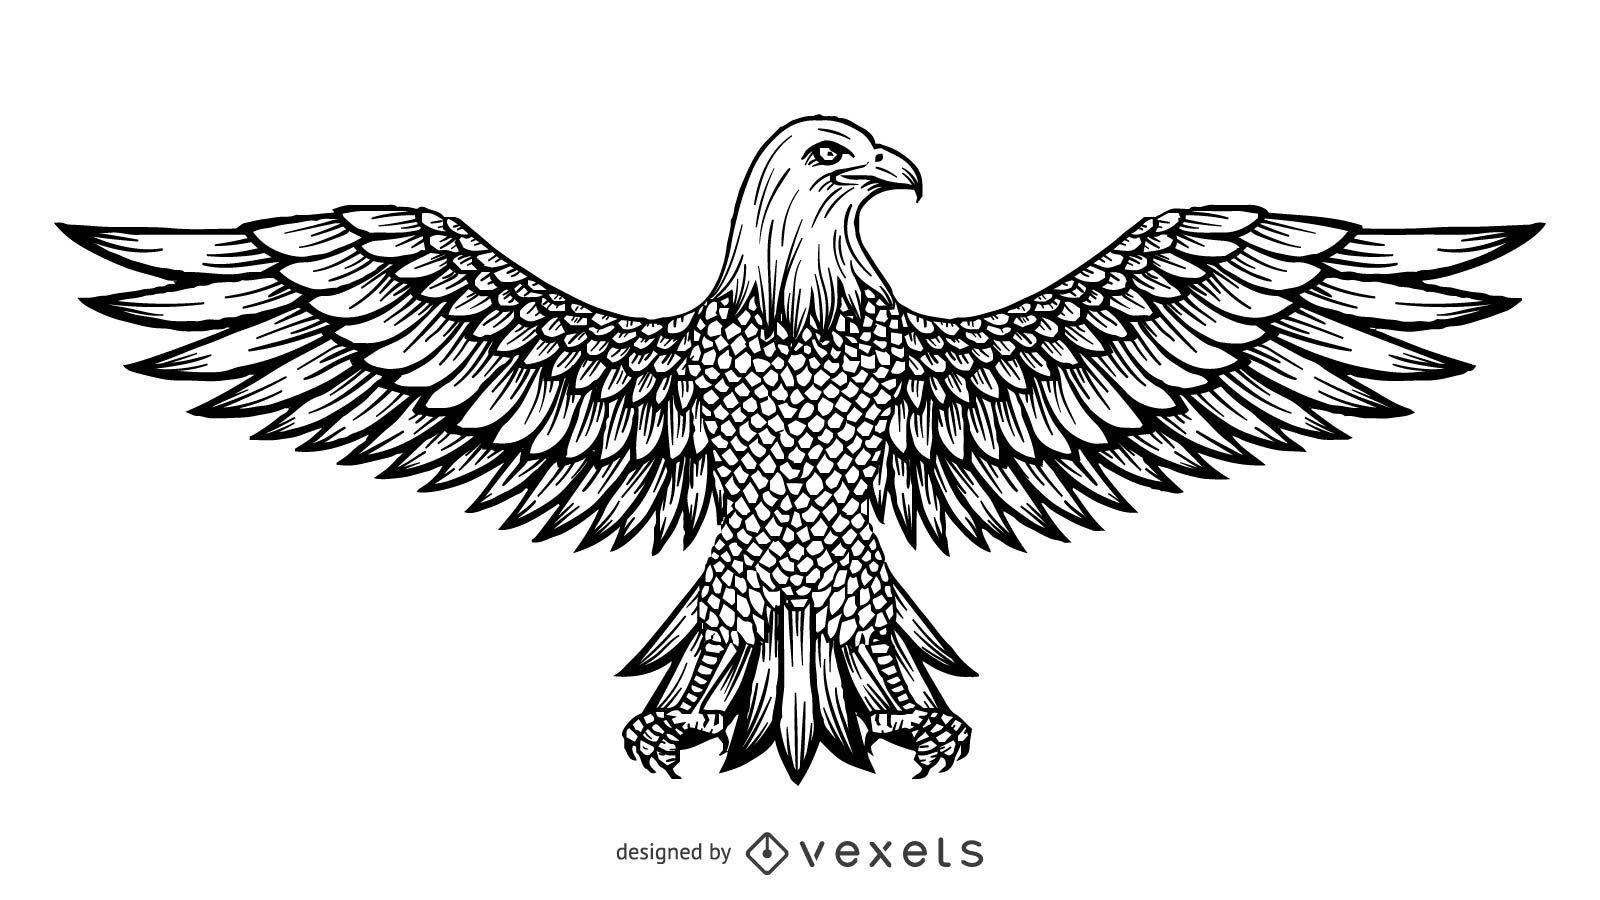 Line Art Vector : Line drawing of eagle pixshark images